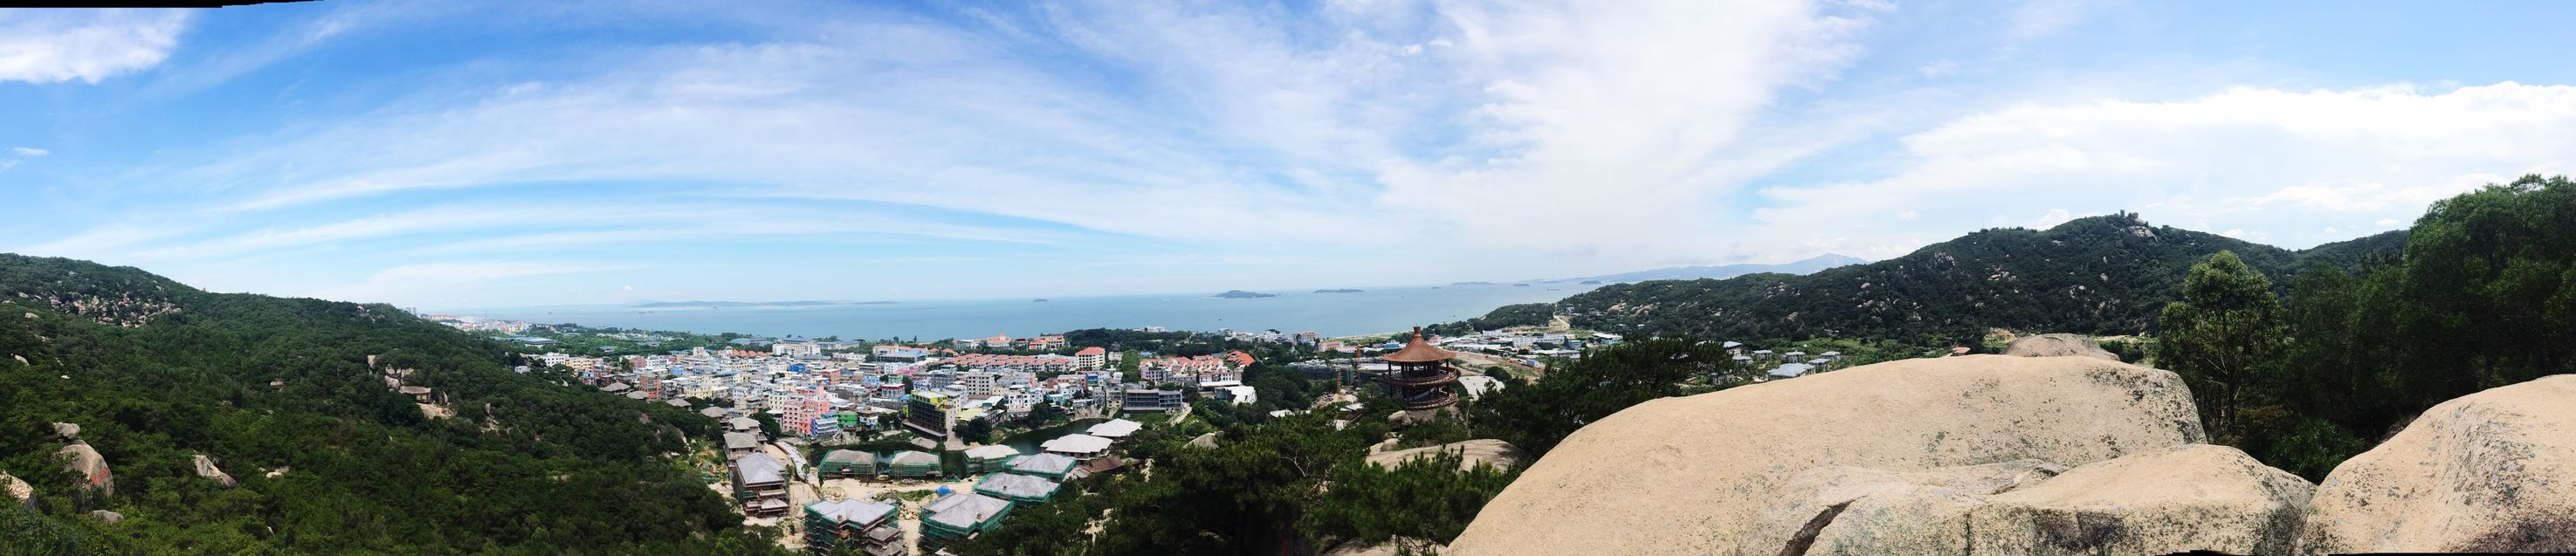 Sunshine Sea Enjoying The Sun How long we can't see this beautiful sea in Amoy.